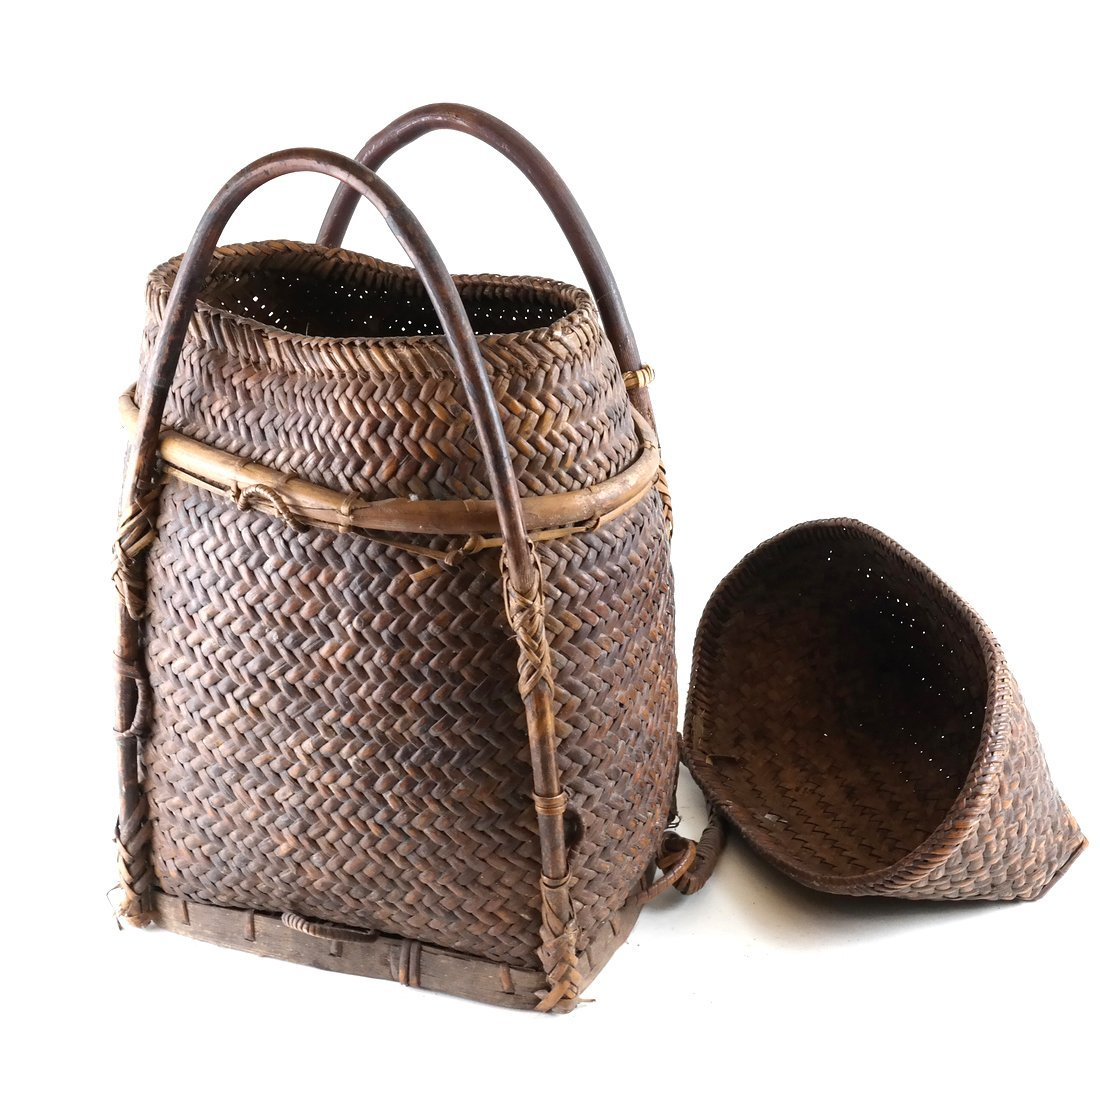 Two Woven Baskets - 6